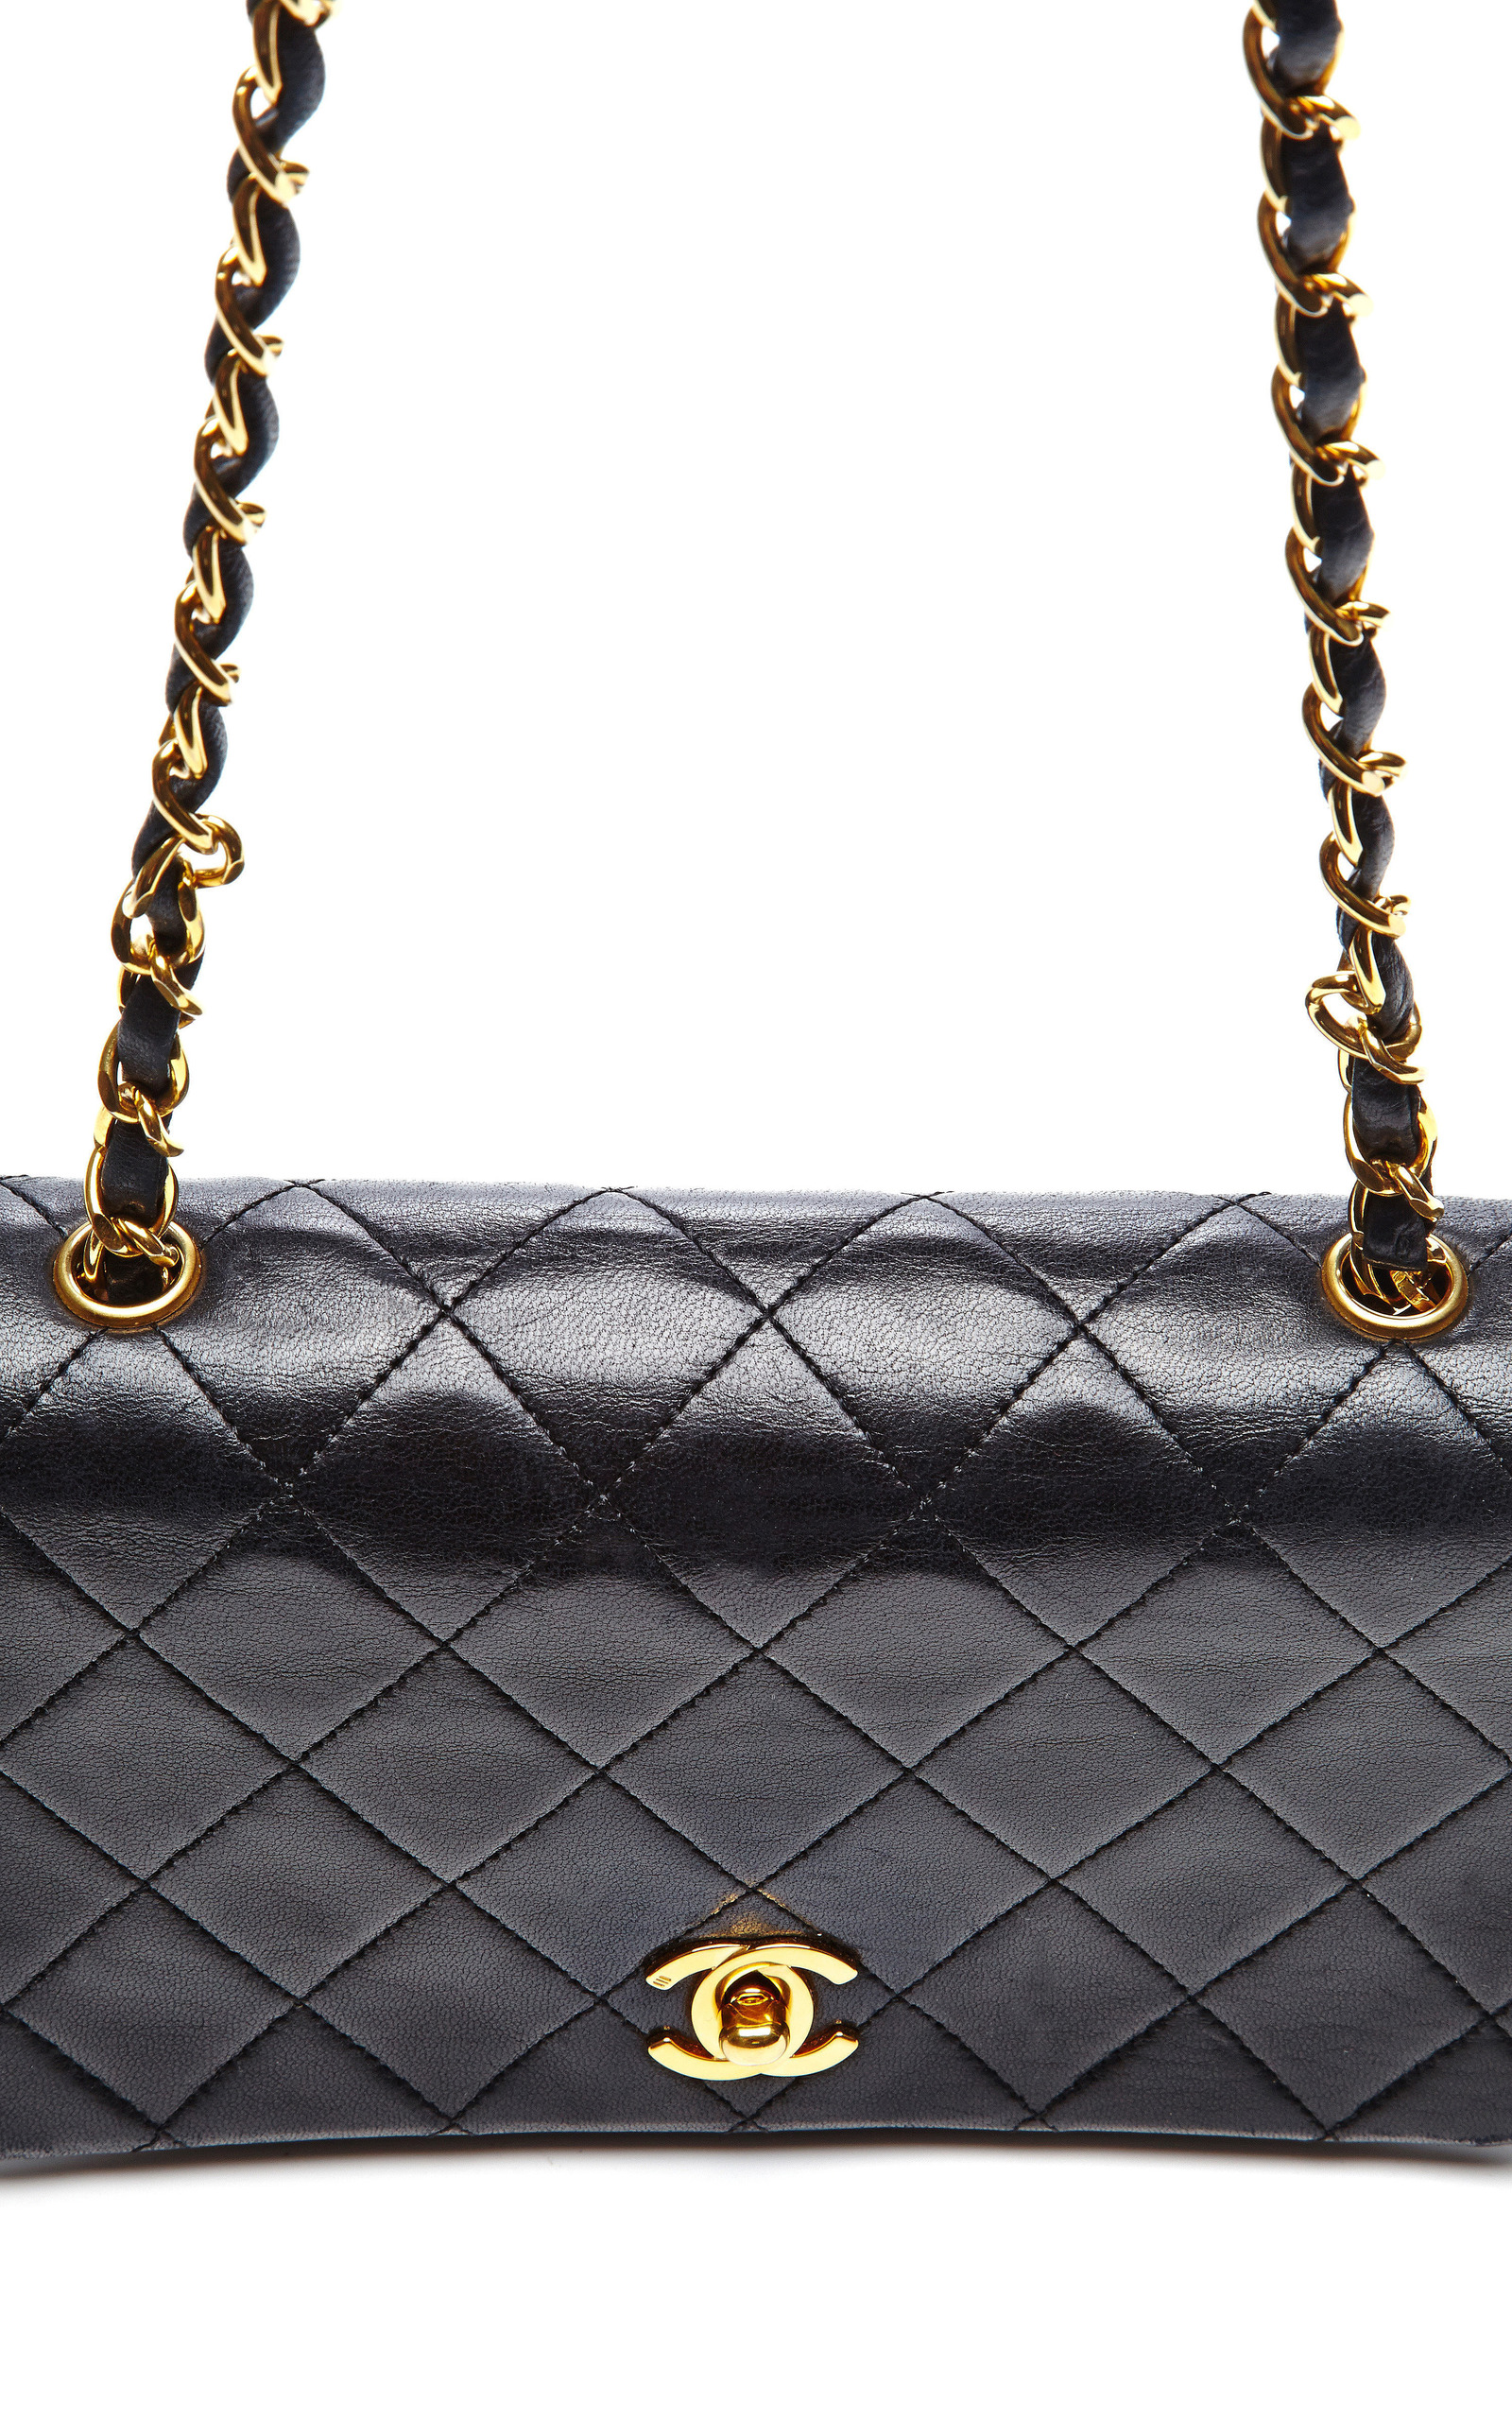 1816471d65b28b Collectible JacketsChanel Black Quilted Lambskin Mini Single Flap Bag from What  Goes Around Comes Around. CLOSE. Loading. Loading. Loading. Loading. Loading